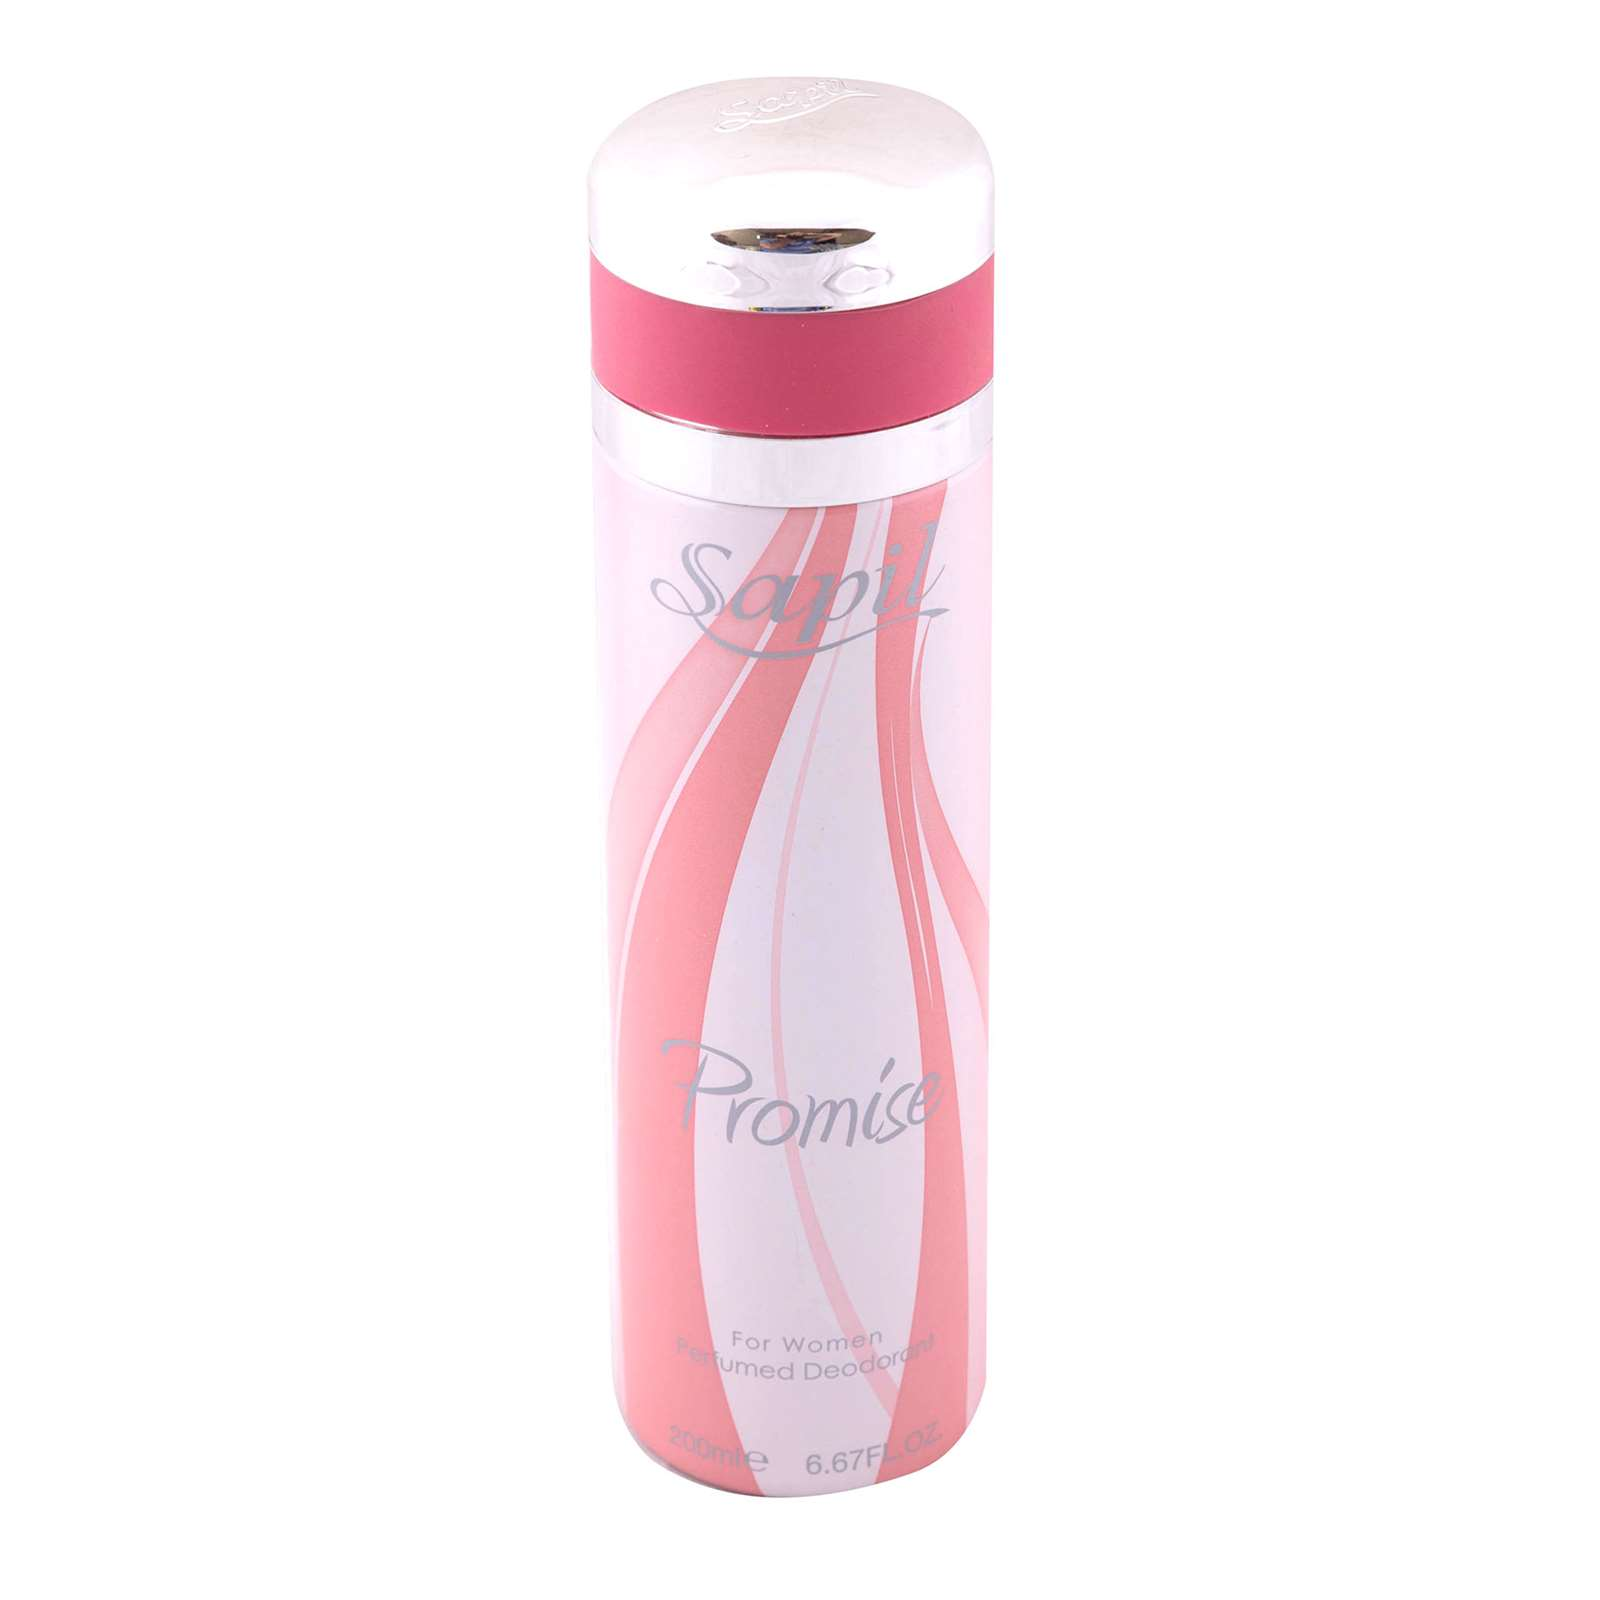 Sapil Promise For Women Bodyspray 200ml